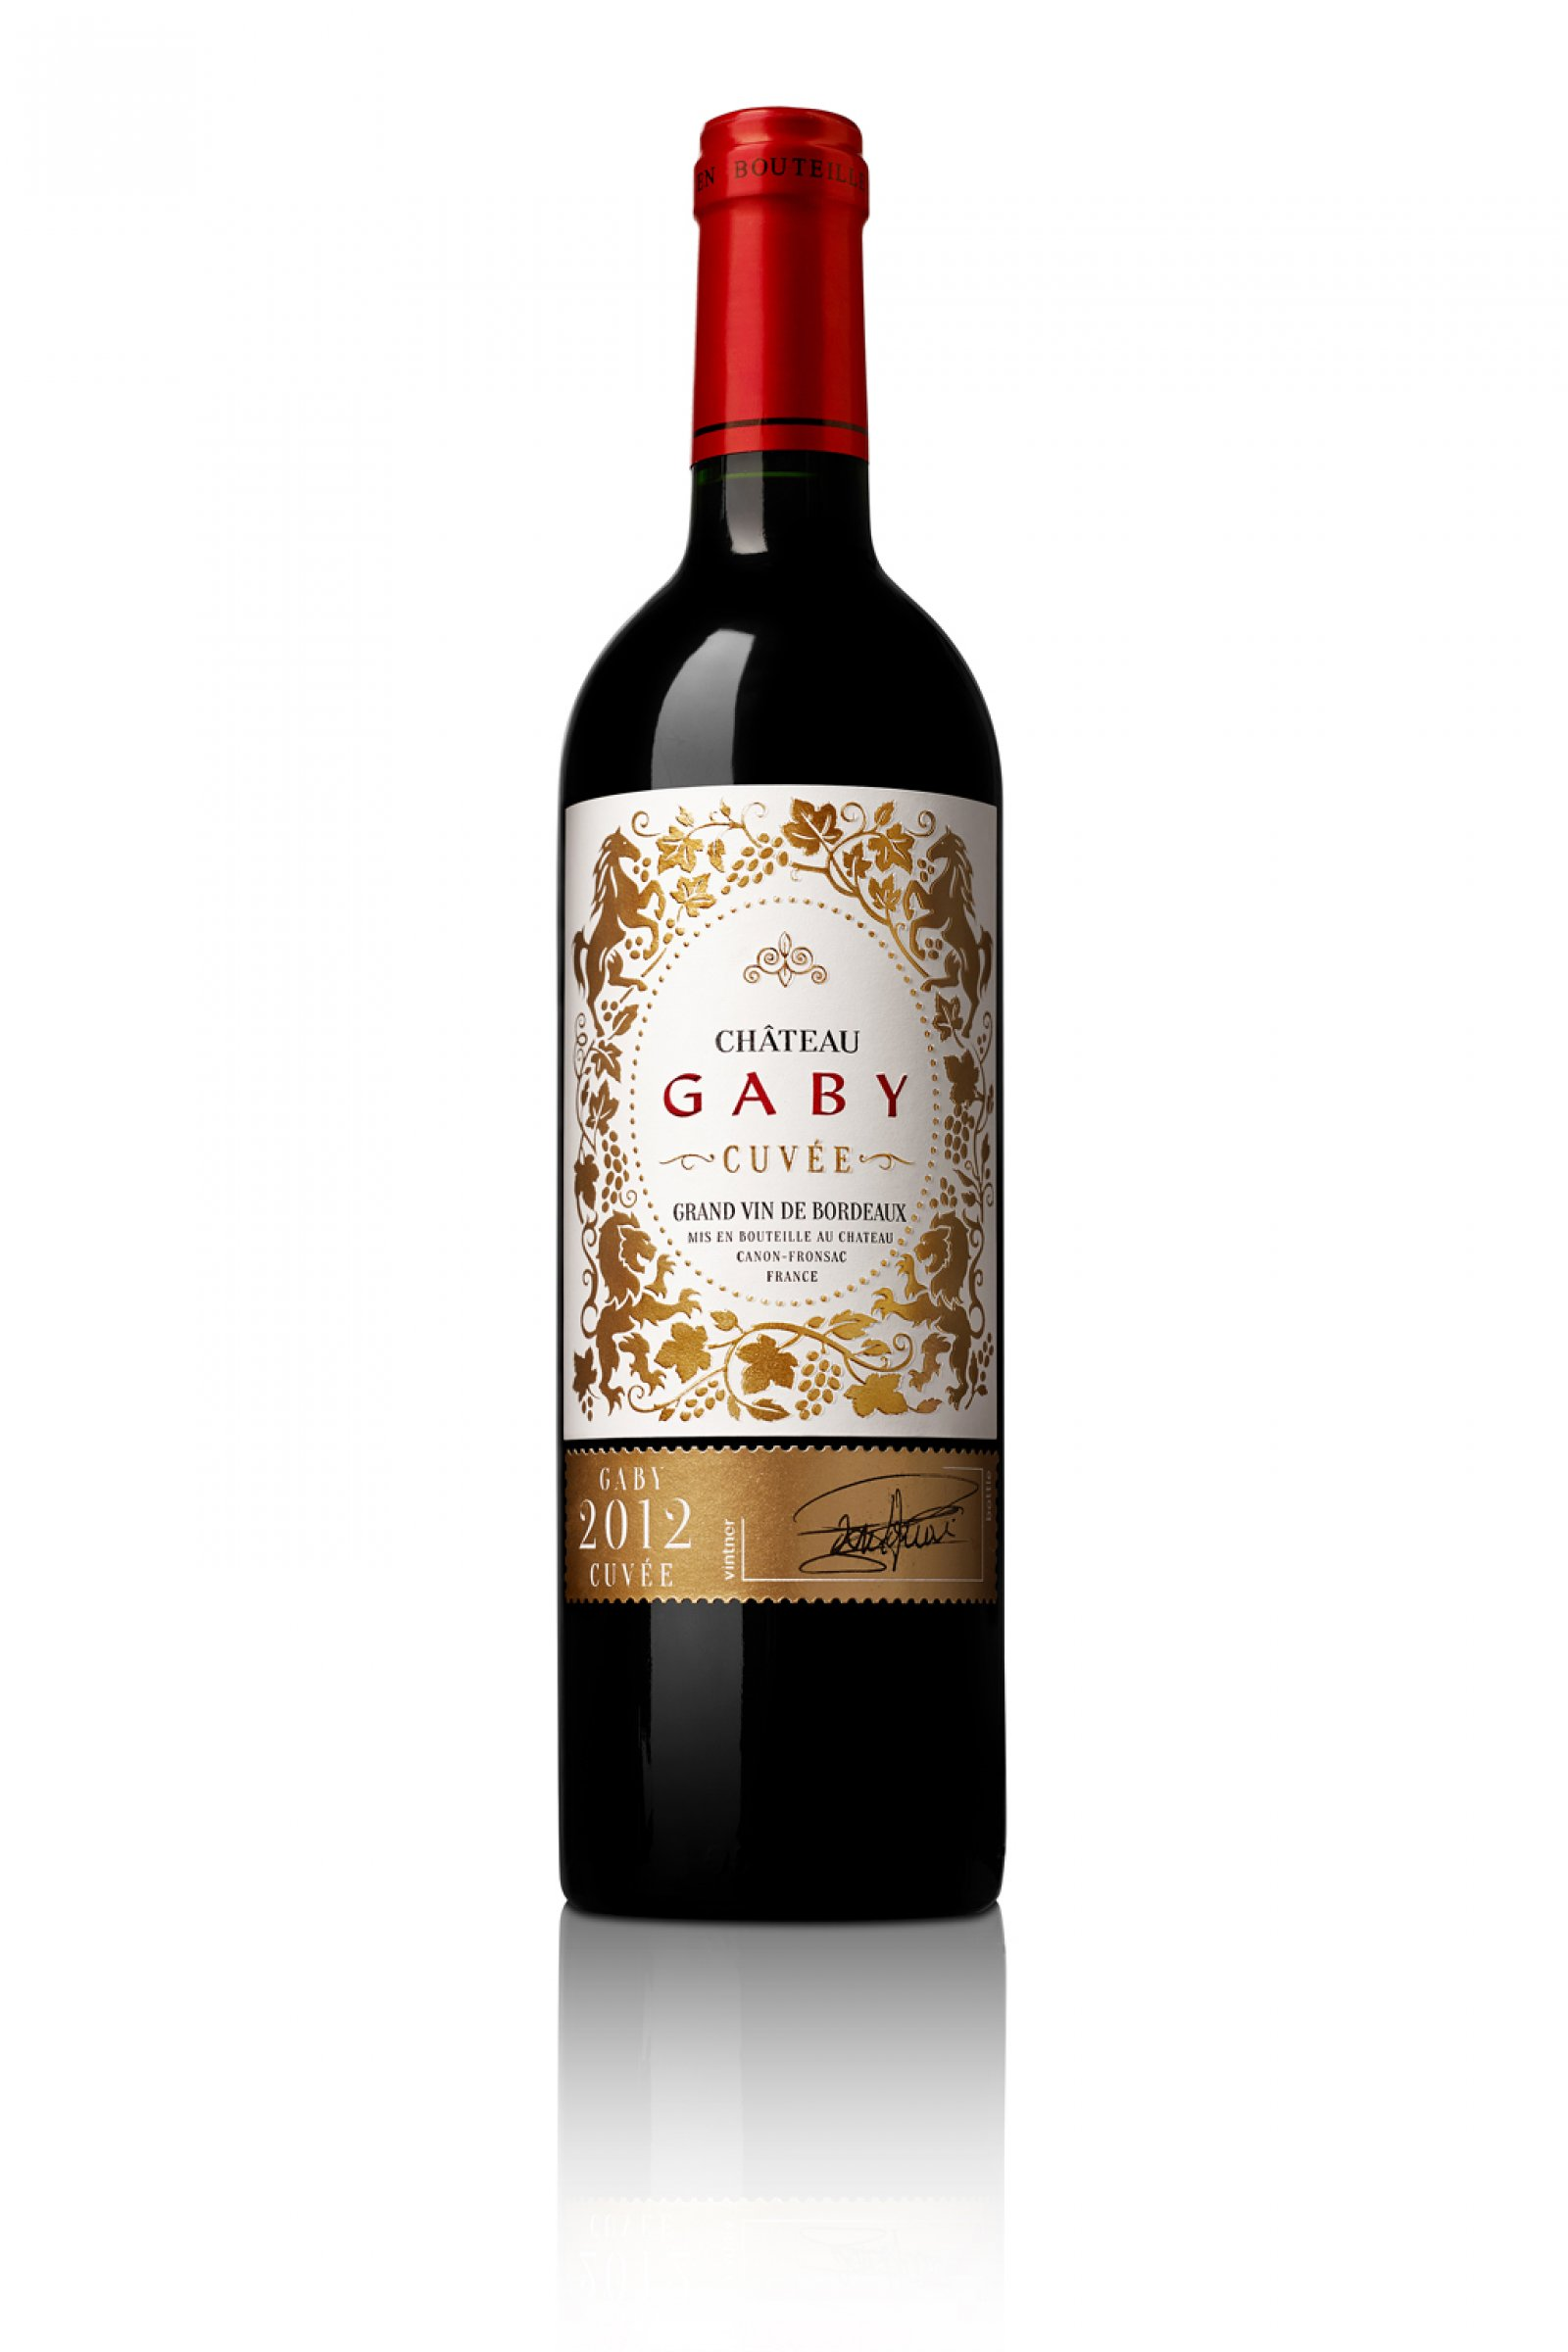 GABY CUVÉE - Gaby Cuvée has a lovely deep color with bright tints. The bouquet is very elegant and multilayered with hints of spice and black and red fruit that delicately intermingle.